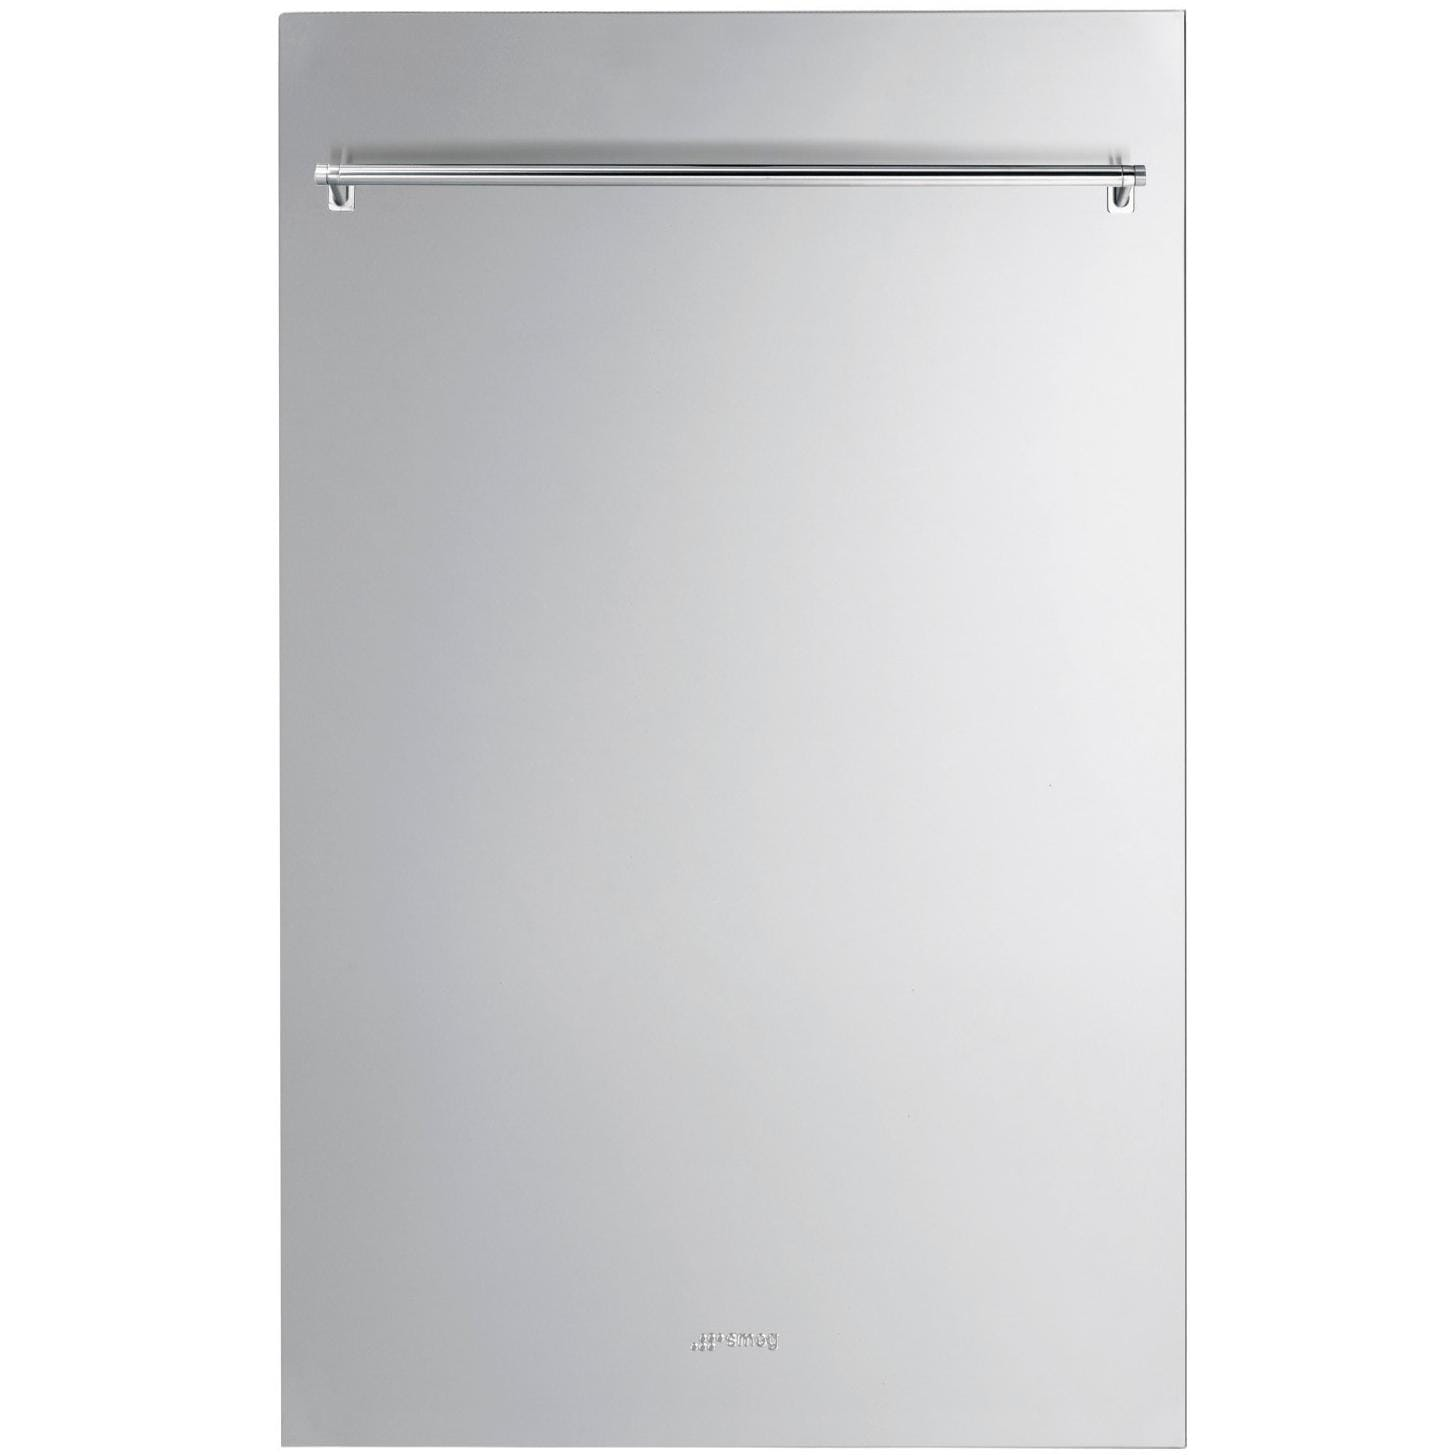 18 inch dishwasher portable black frigidaire 18 inch for 18 inch door lowes